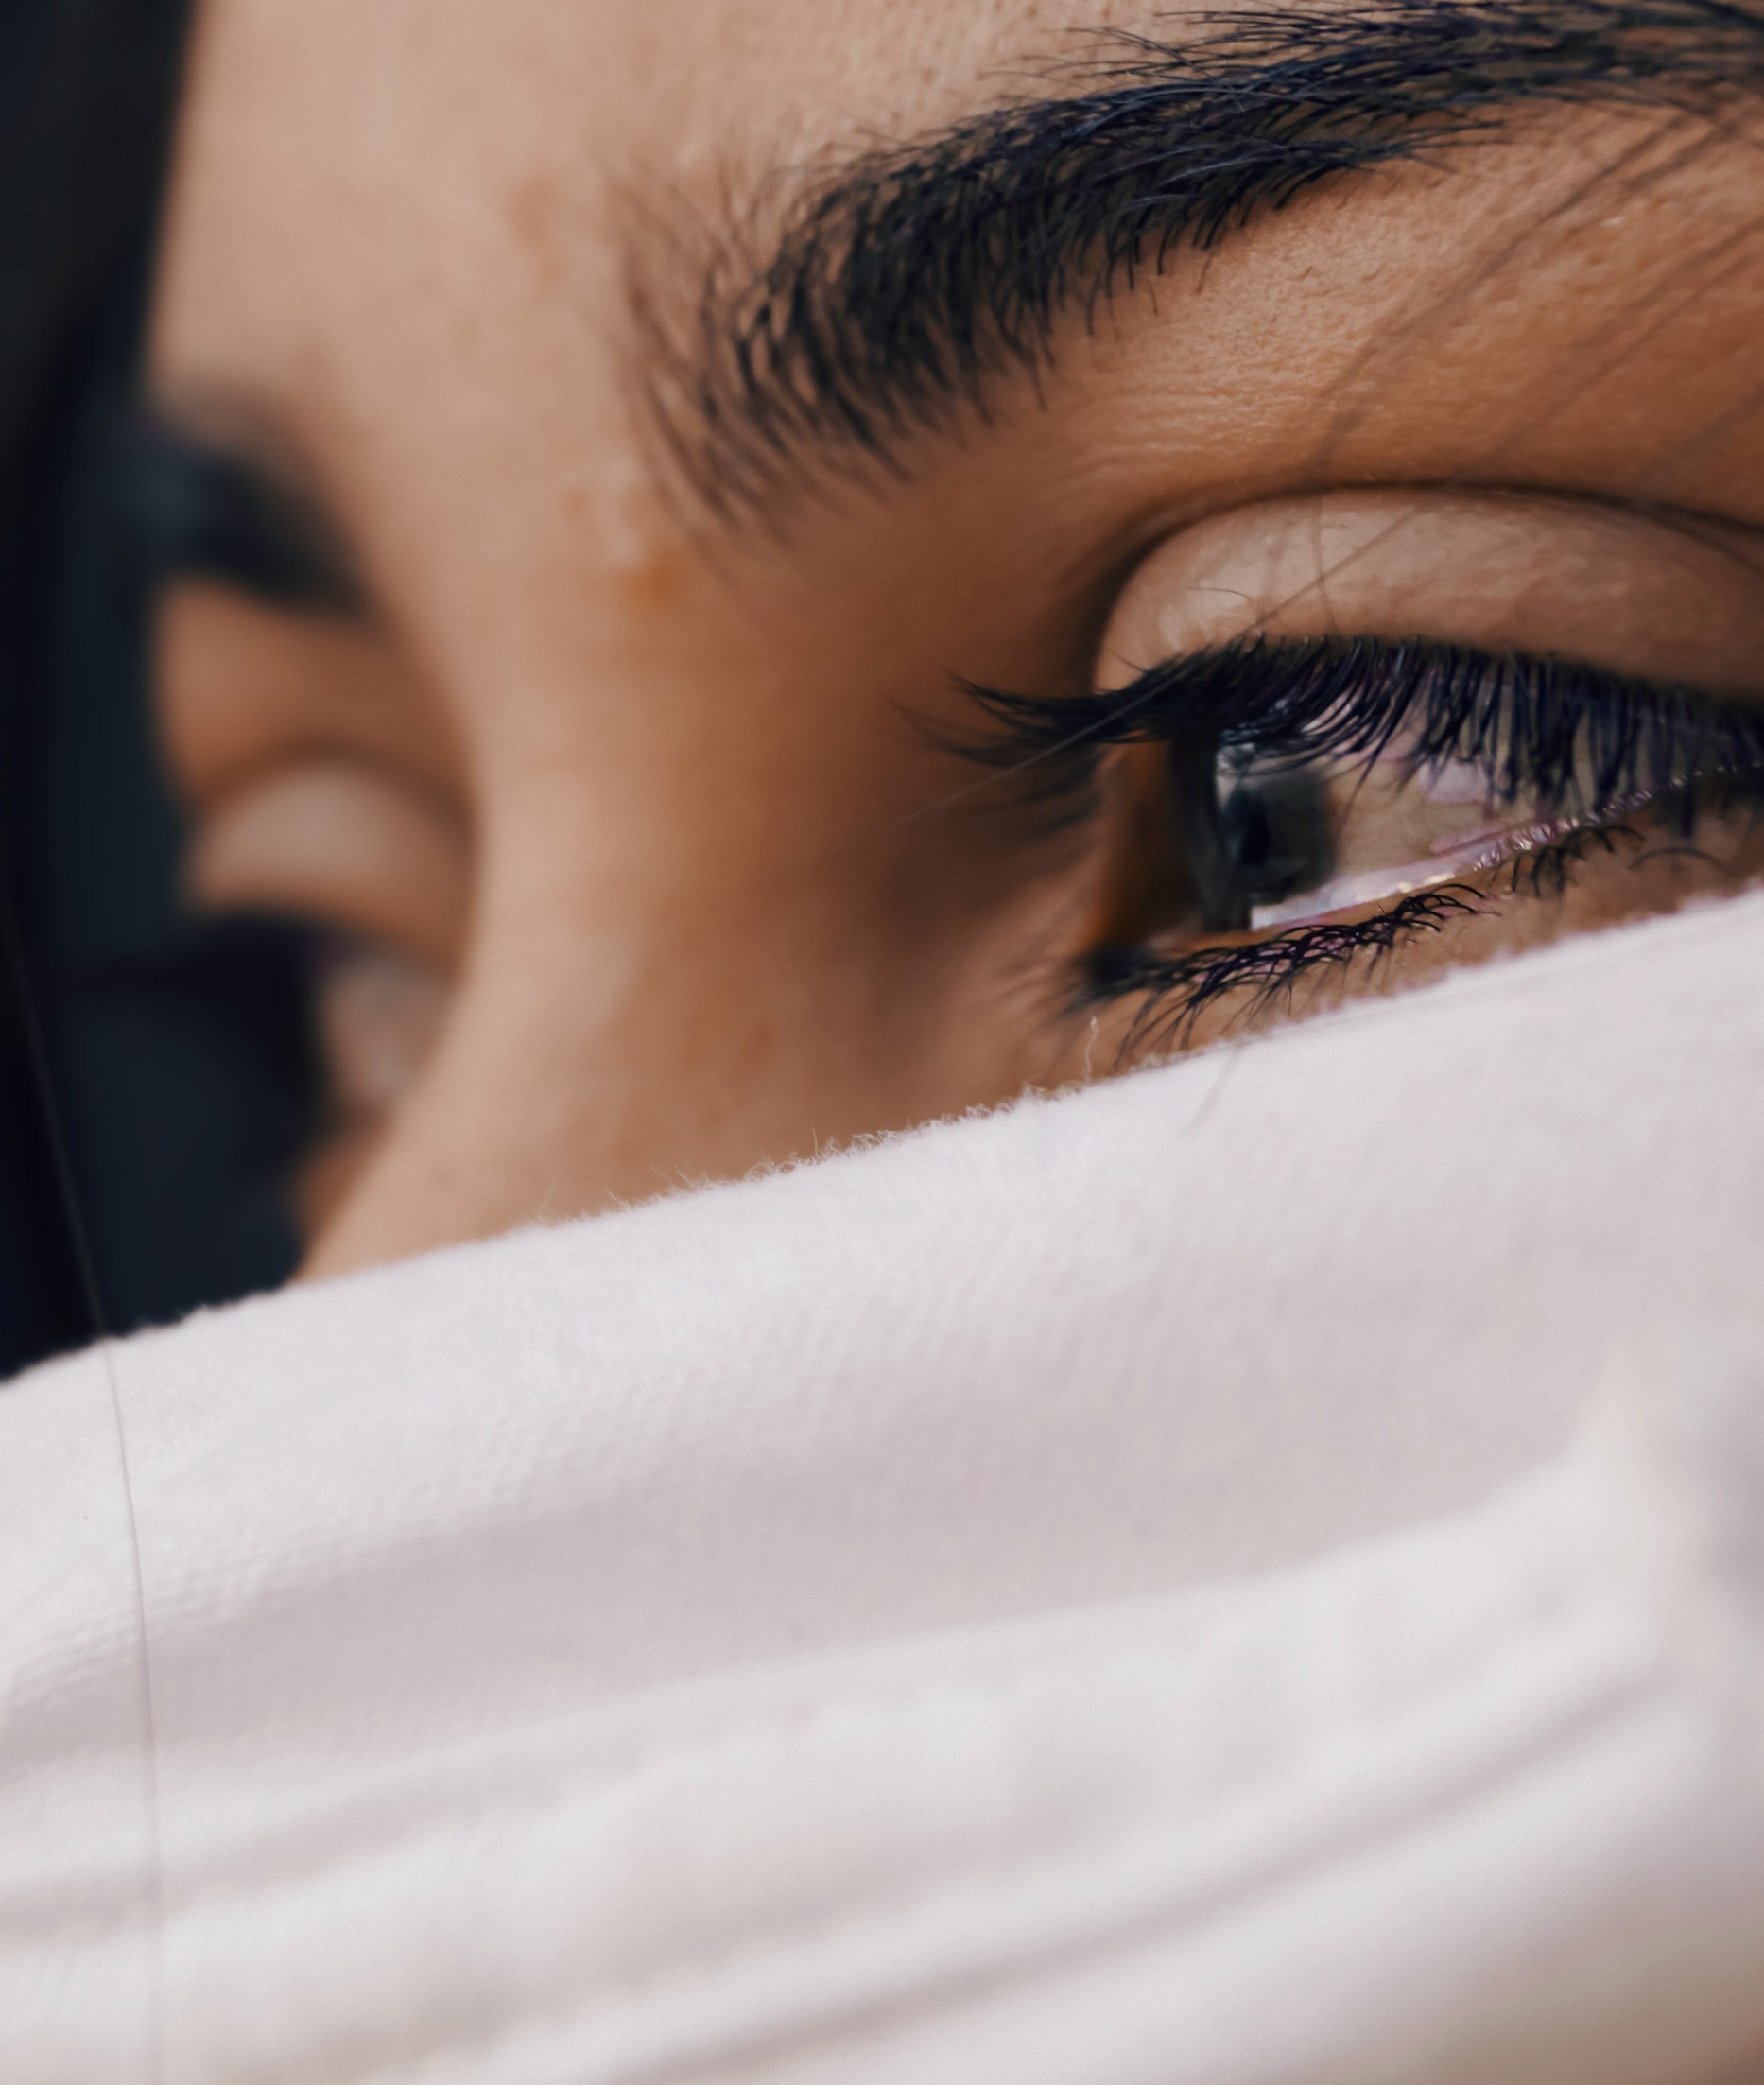 6 Things Most People Don't Know About Crying For No Reason